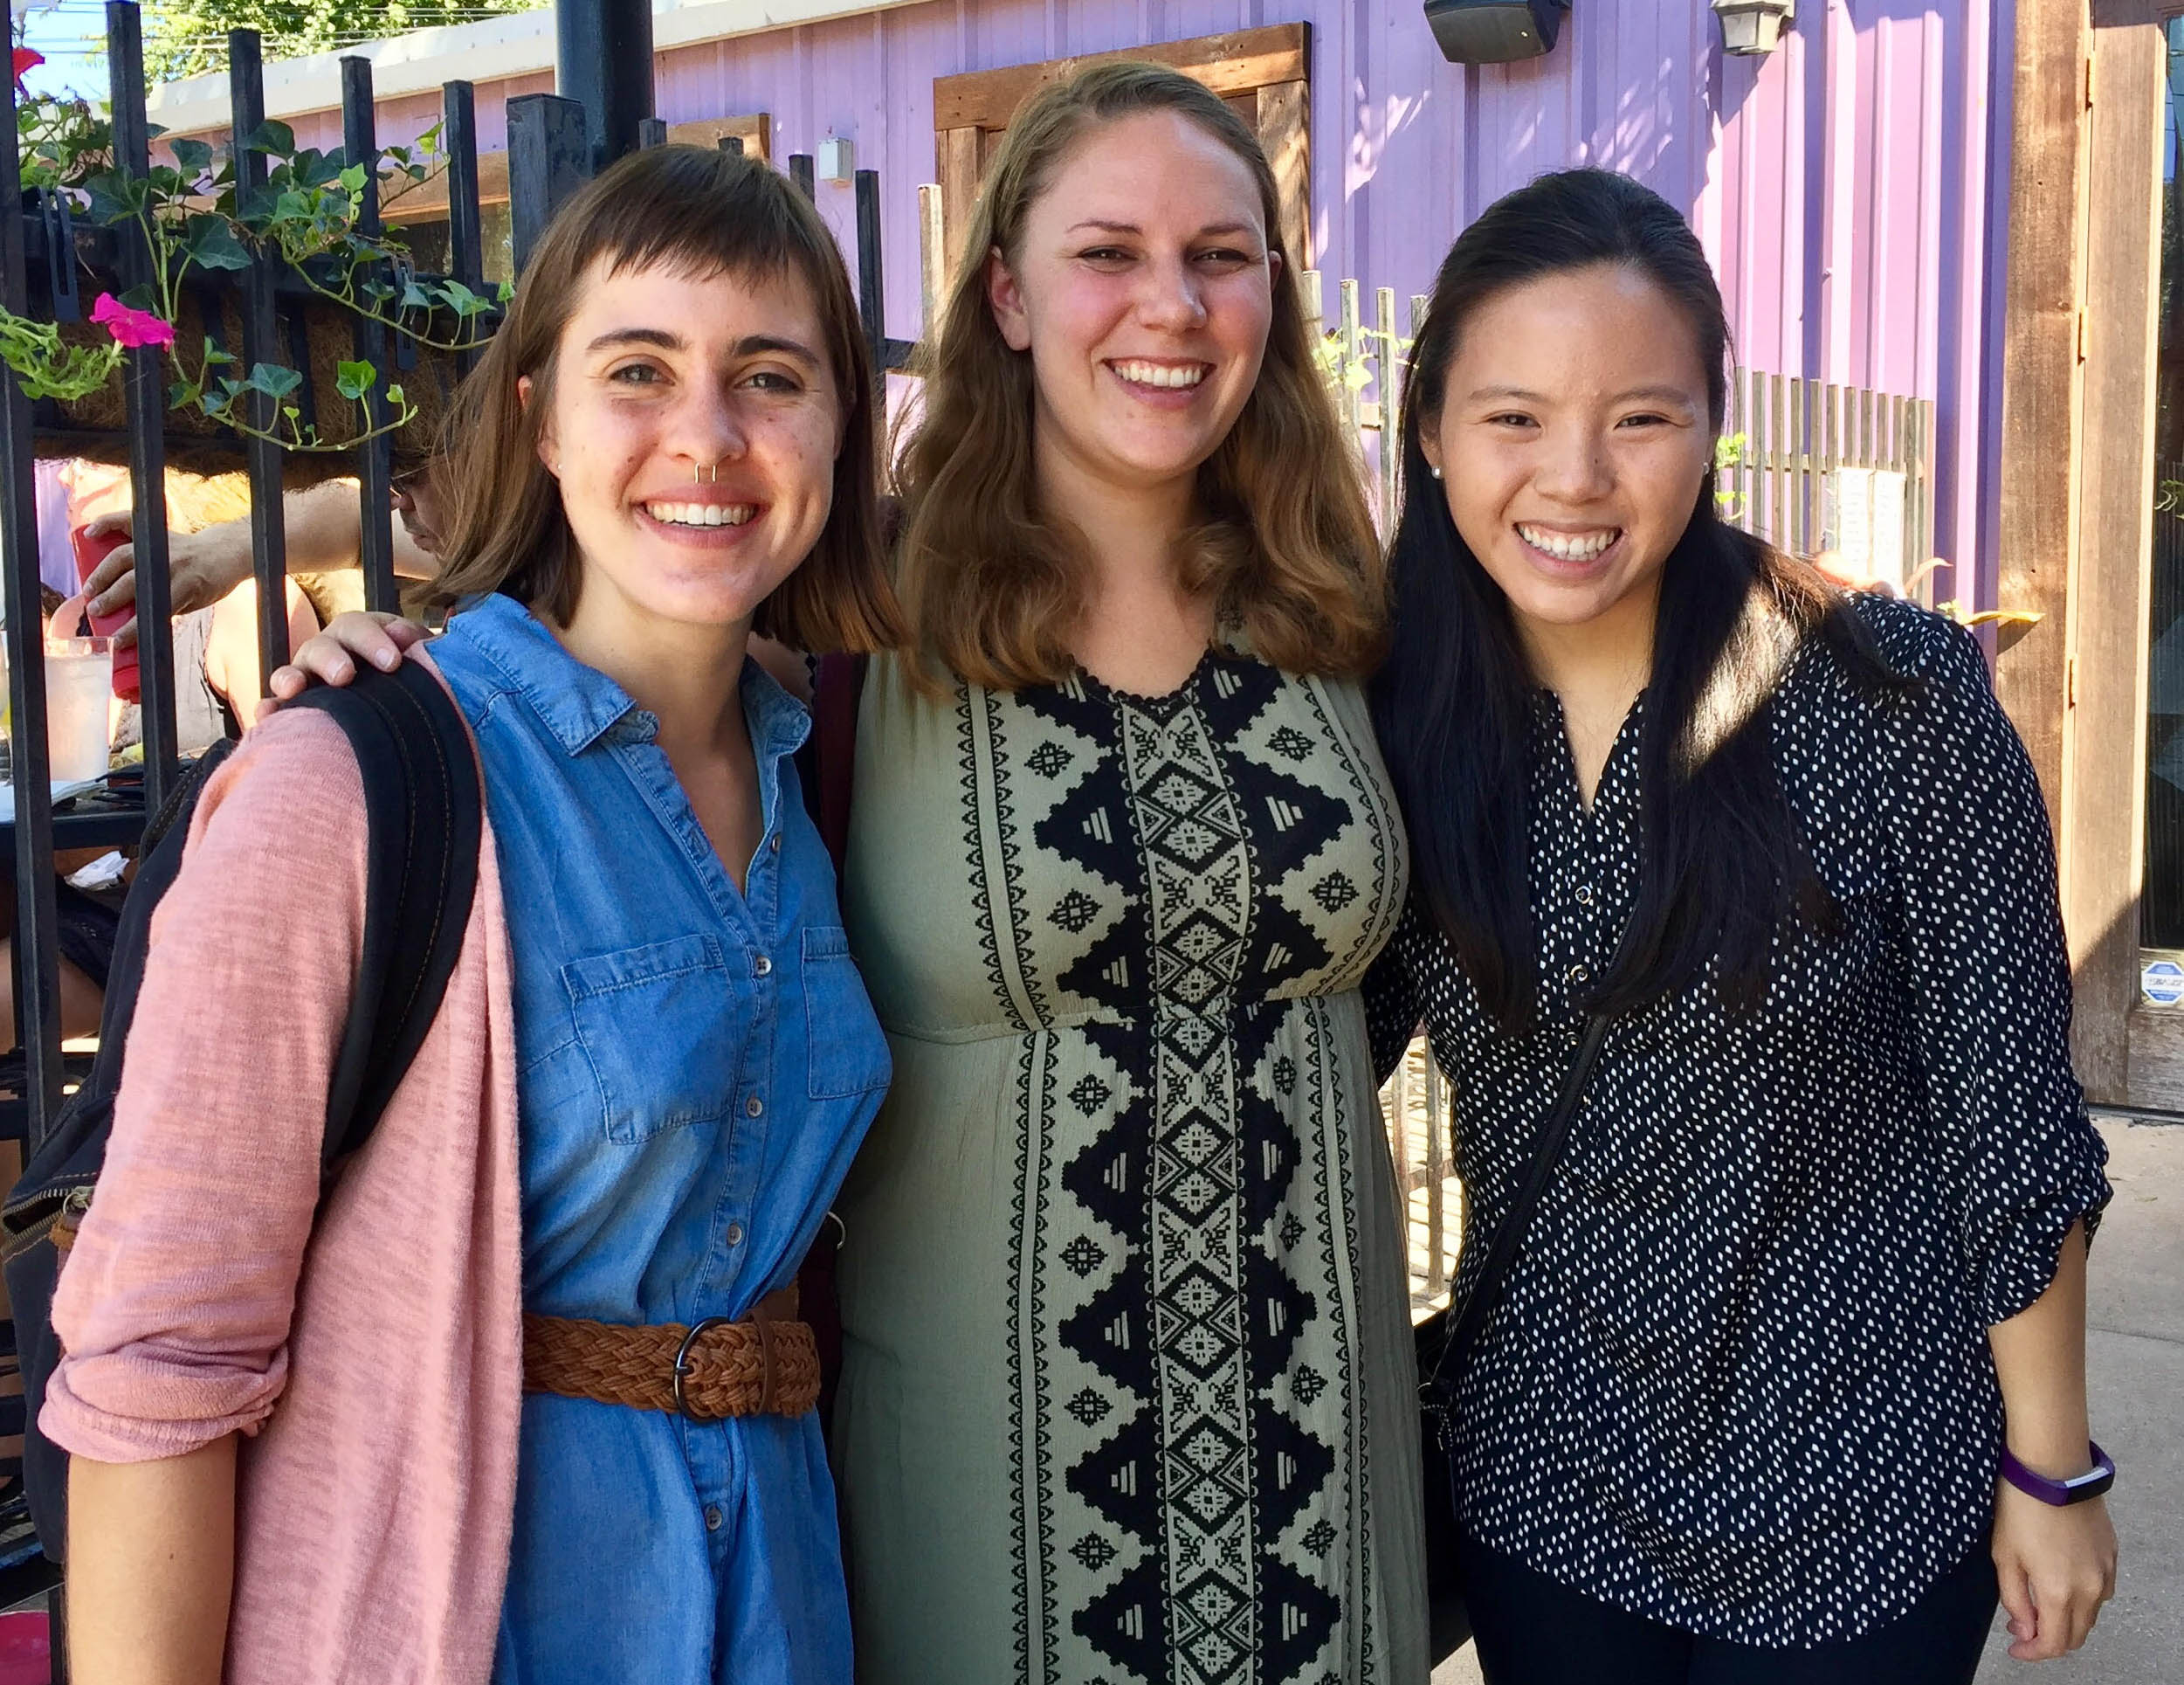 LBJ dual degree student Jaclyn Le (MPAff '19) with friends